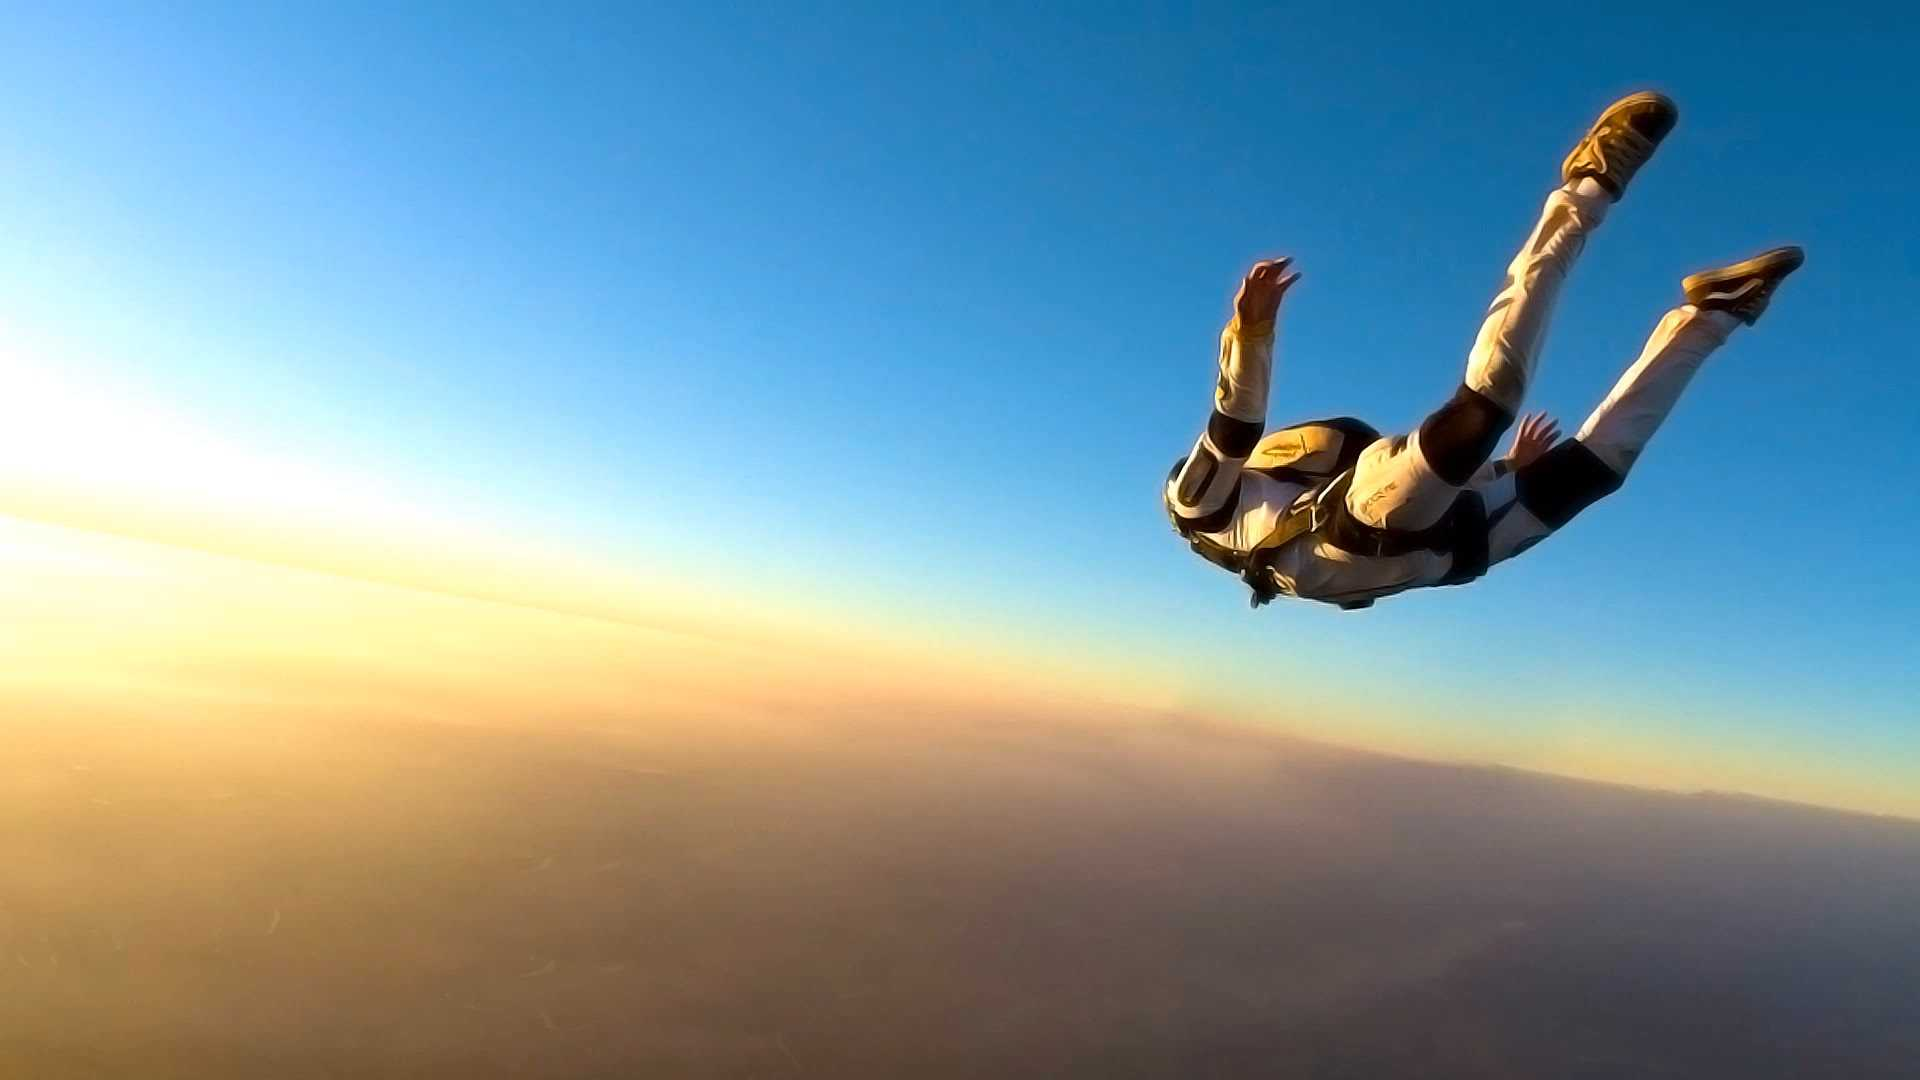 Georgia man dies in skydiving accident